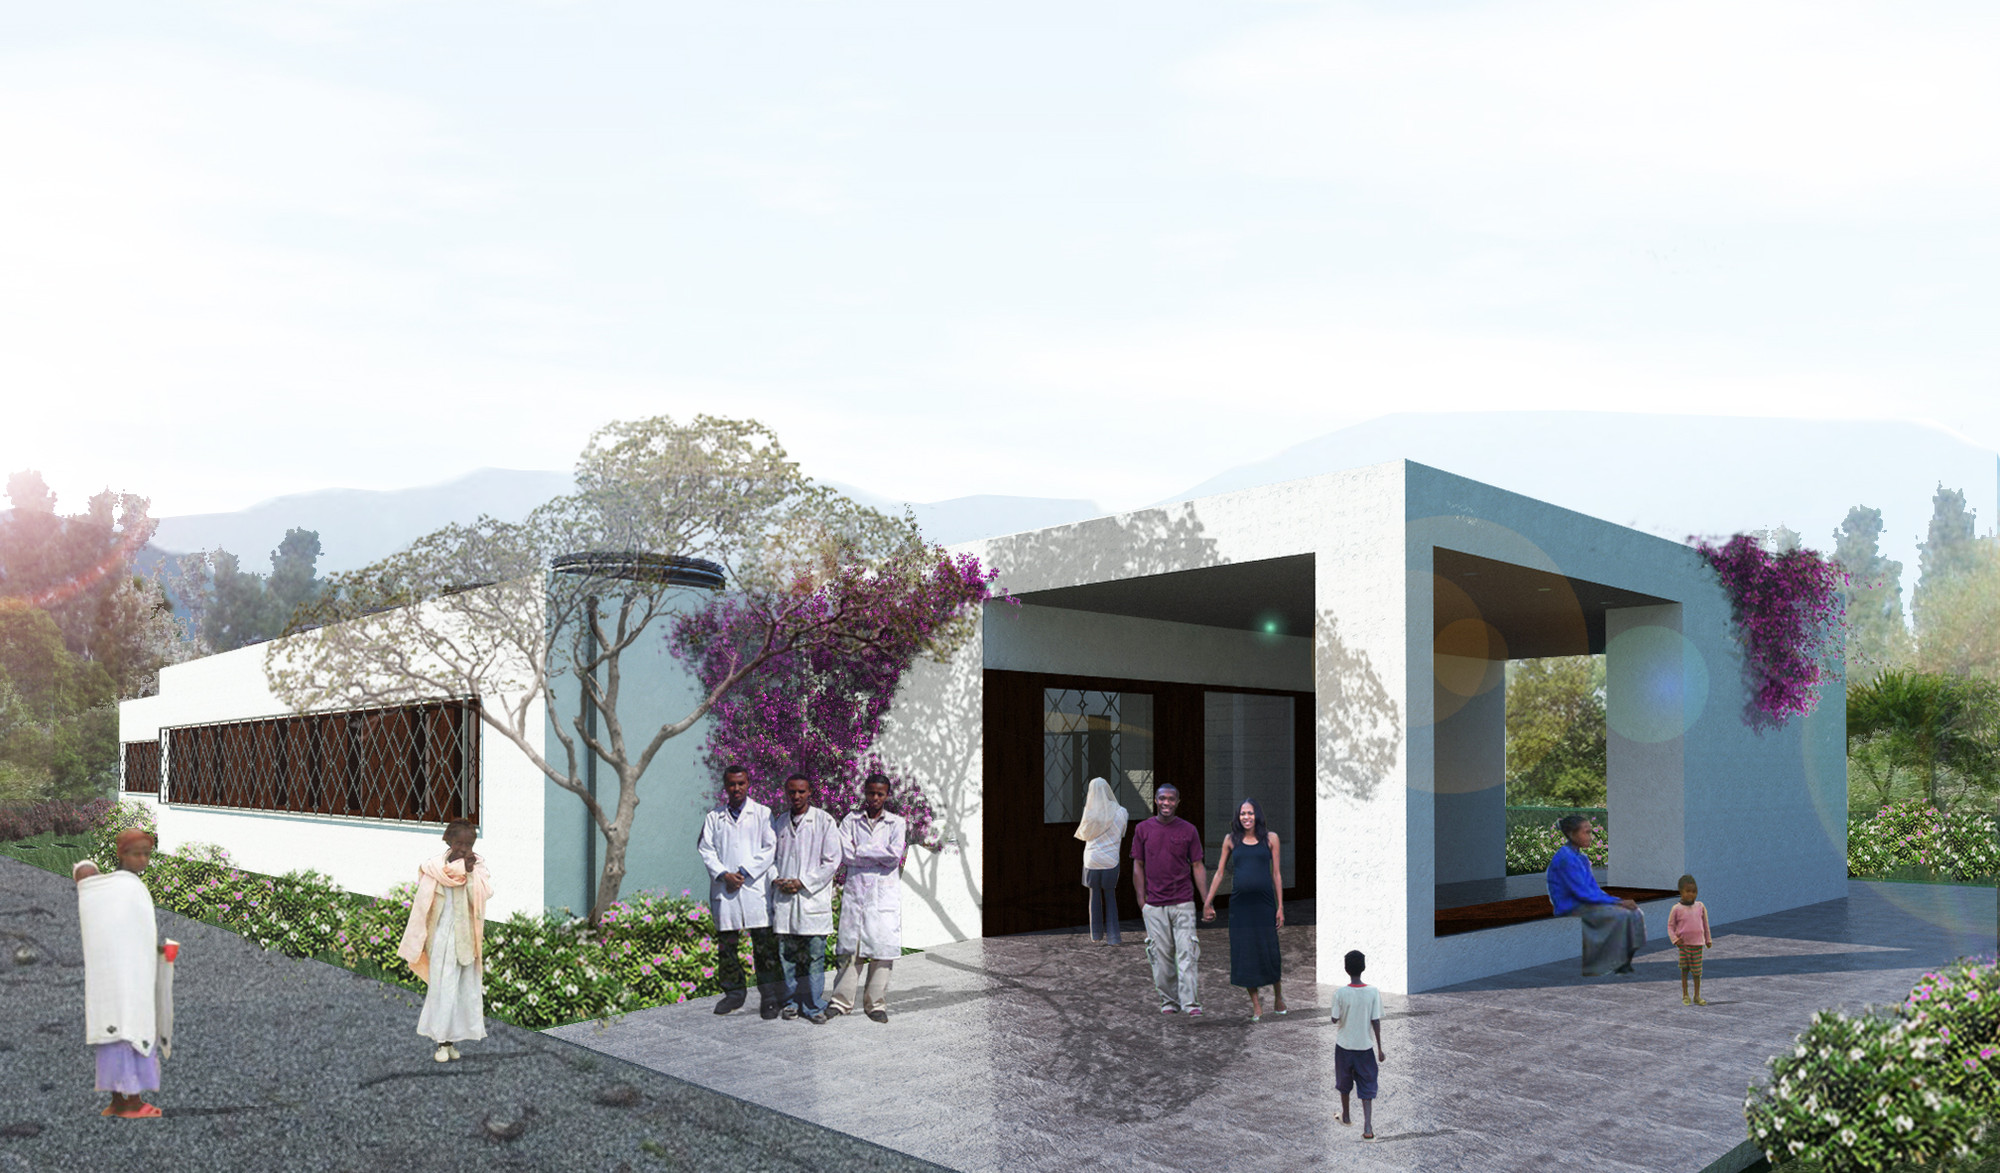 Woldya Maternity Center / Xavier Vilalta Architects, Courtesy of Xavier Vilalta Architects